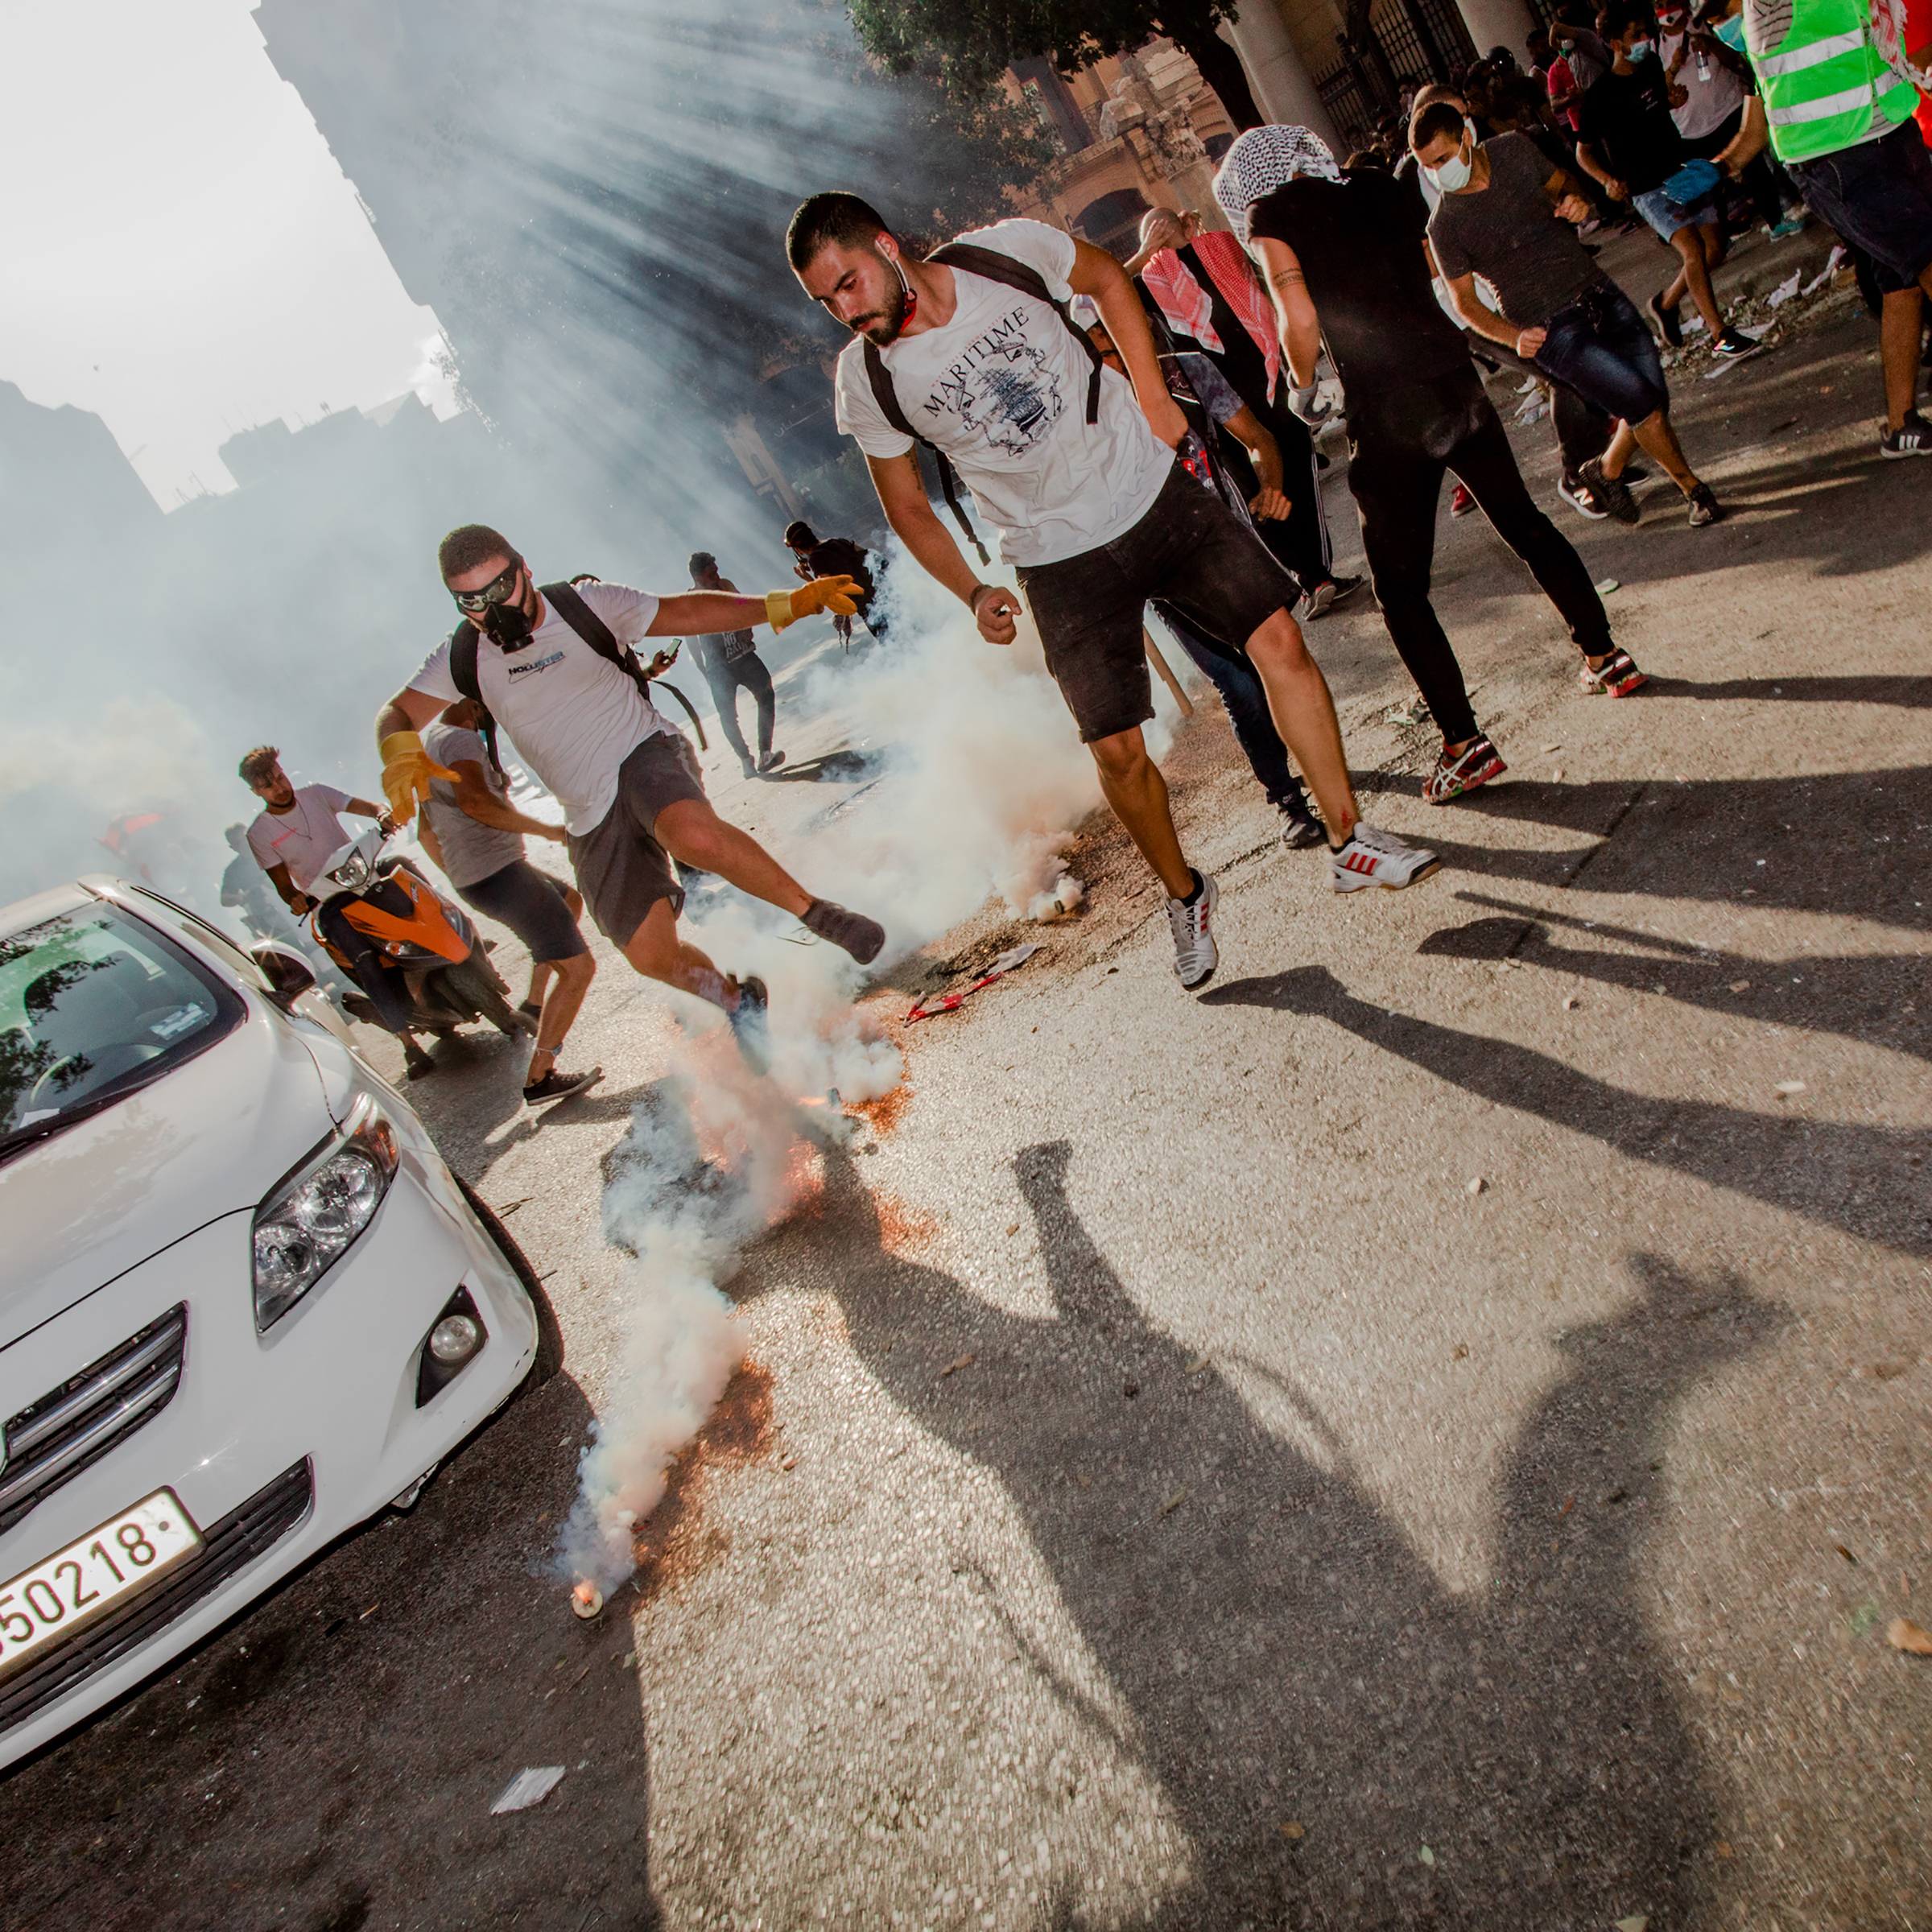 Smoke billows from a tear gas canister during an antigovernment demonstration in Beirut on Aug. 8, four days after the blast.